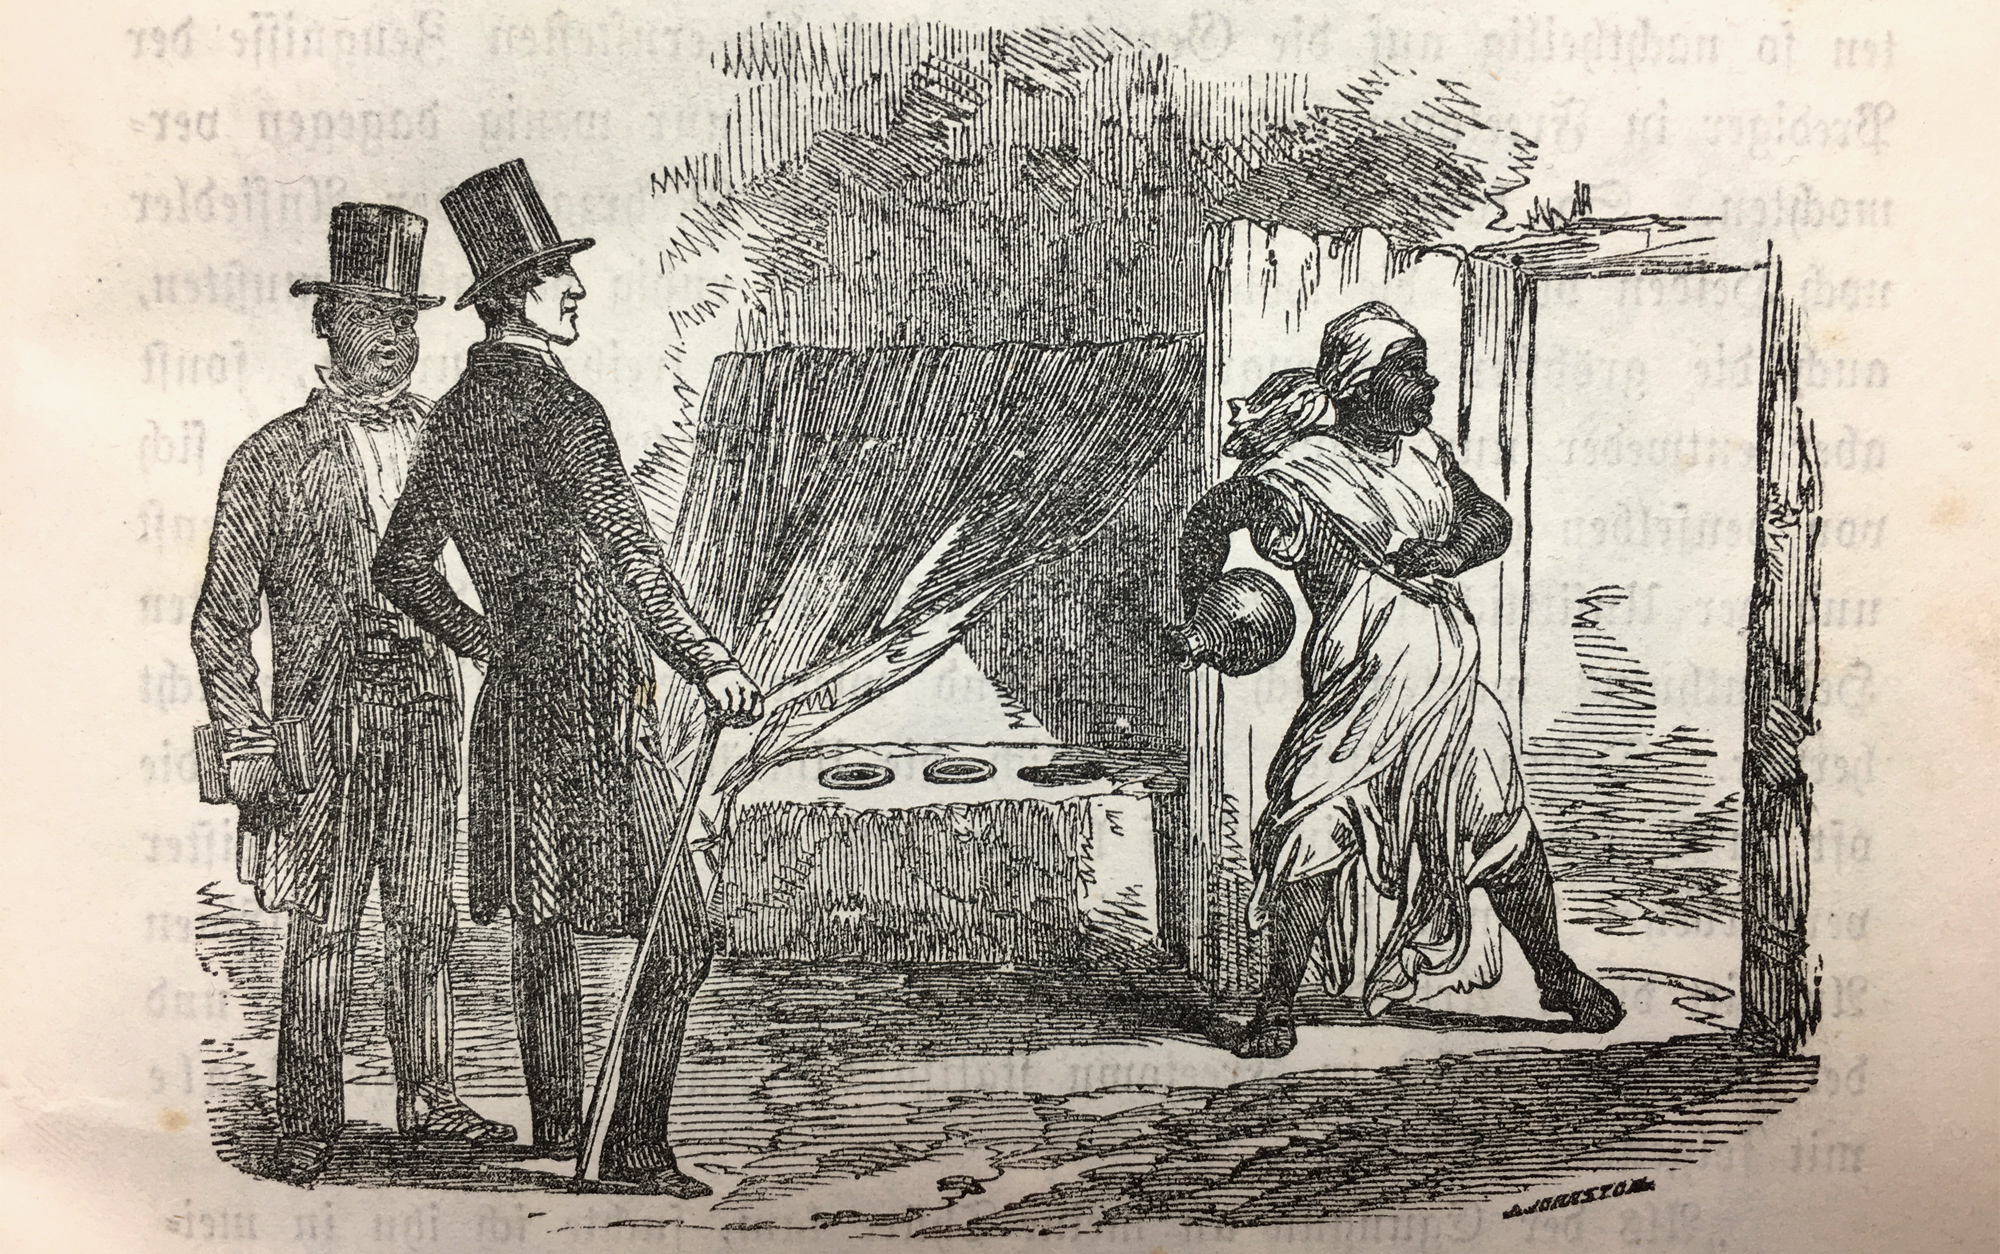 """An African Christian priest, bible in his hand, watches a European missionary, who watches an Olorisha, who throws away the """"idols"""". Interesting, that the African does not watch it directly, but rather follows the European's view on the scene, as if he was learning from his reactions. The Orisha shrine behind the curtain inside the house is empty, in the hand of the Olorisha is a clay pot with sacred water from a spring, mentioned in the text below. Clothes make the difference between the """"wild"""" and the educated African."""